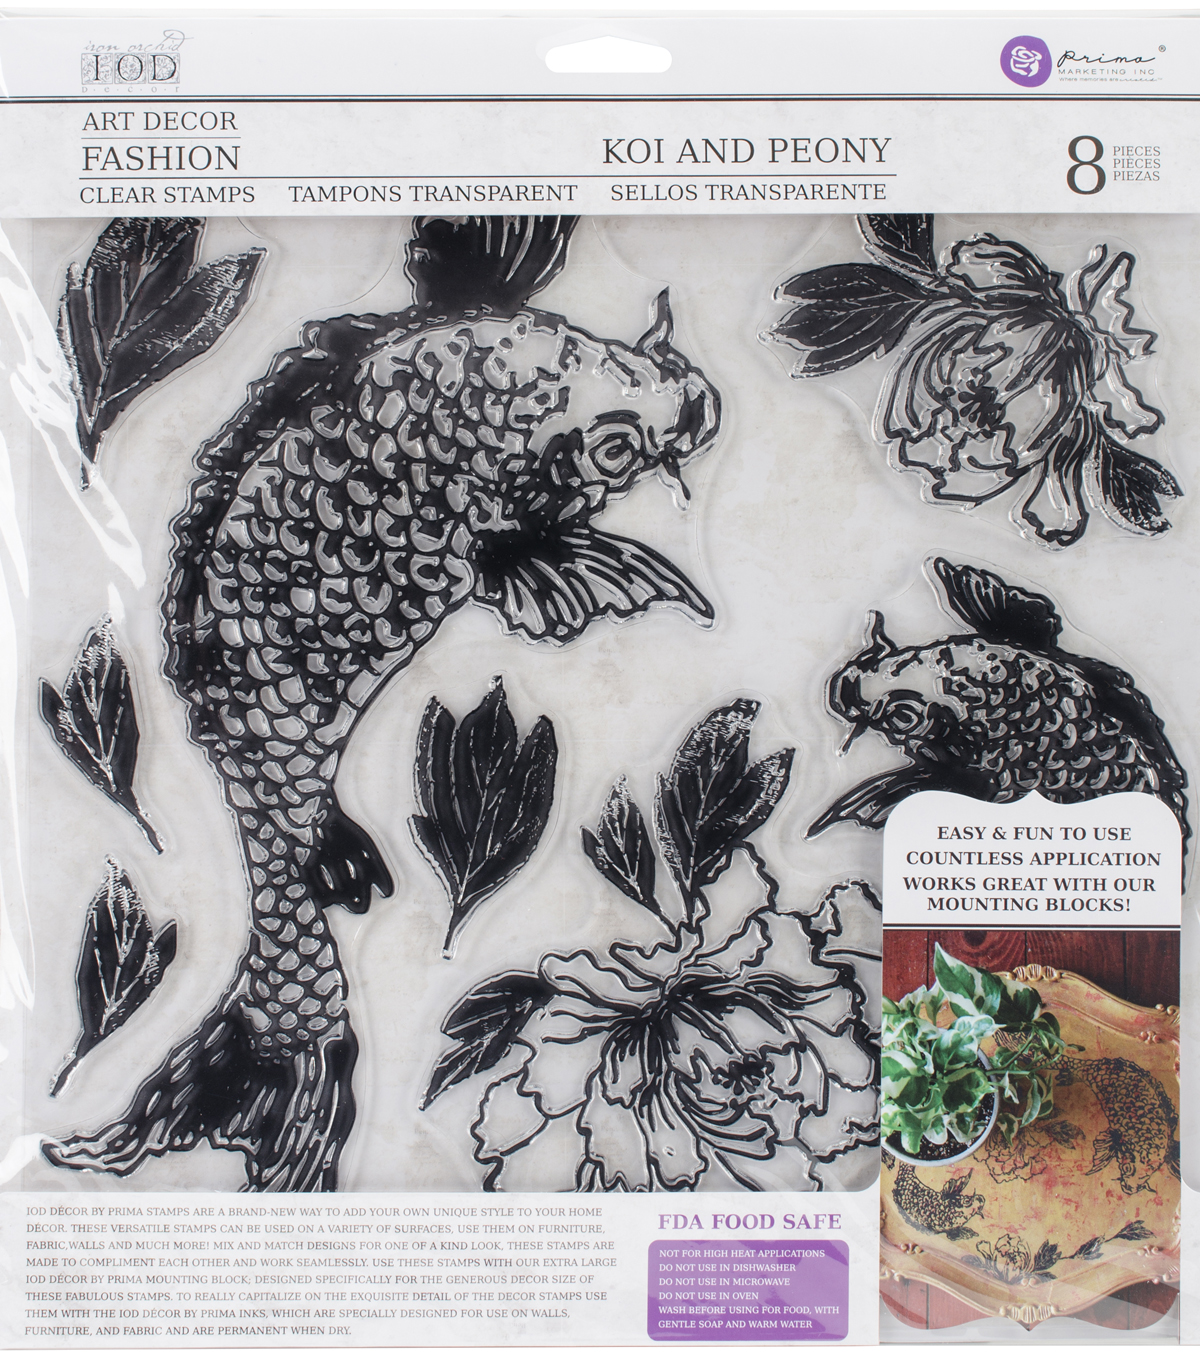 Iron Orchid Designs 8 pk Art Decor Fashion Clear Stamps-Koi & Peony